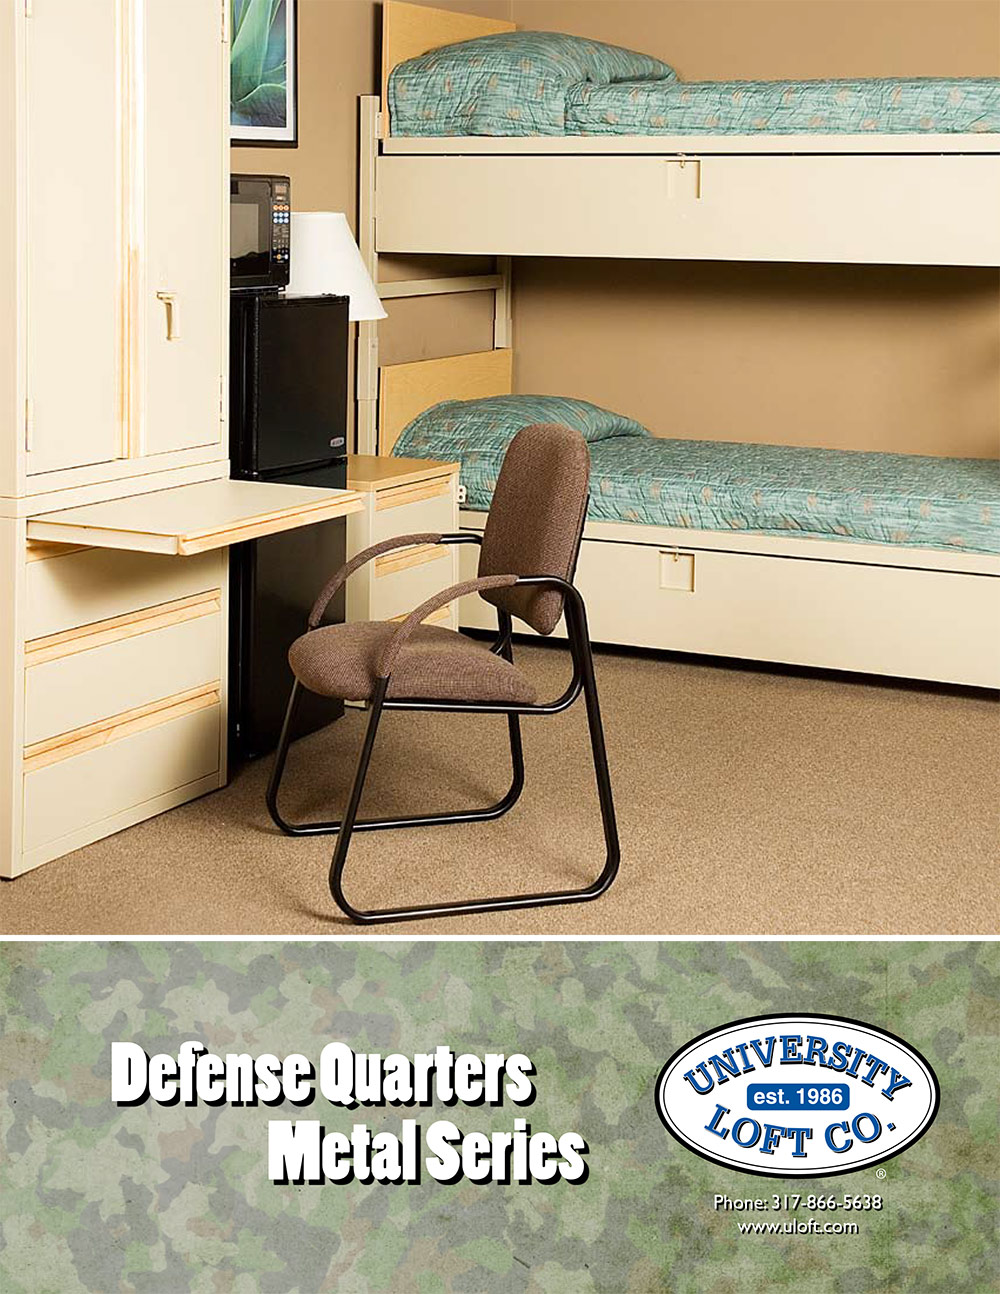 Defense Quarters Metal Series